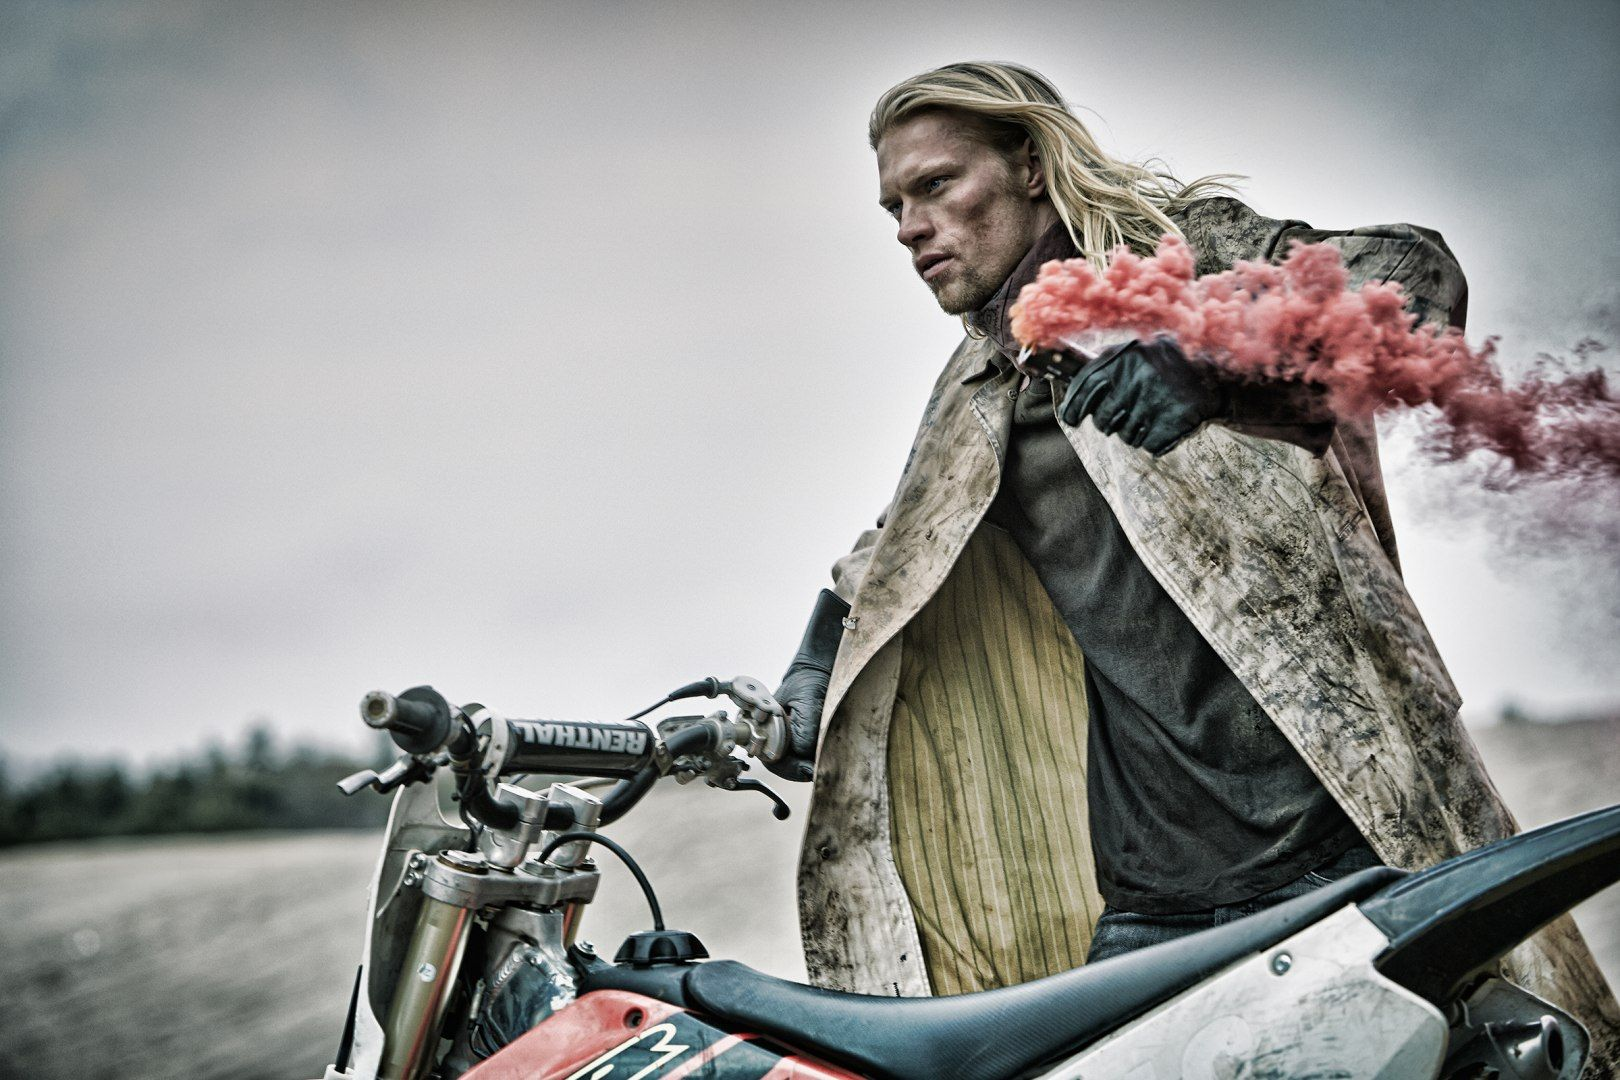 Suzy Johnston & Associates   Dan Lim - Nomad explores the contrast between the nomadic life of a model, and that of an avid adrenaline junkie  #Motorcycles #Fashion #Menswear